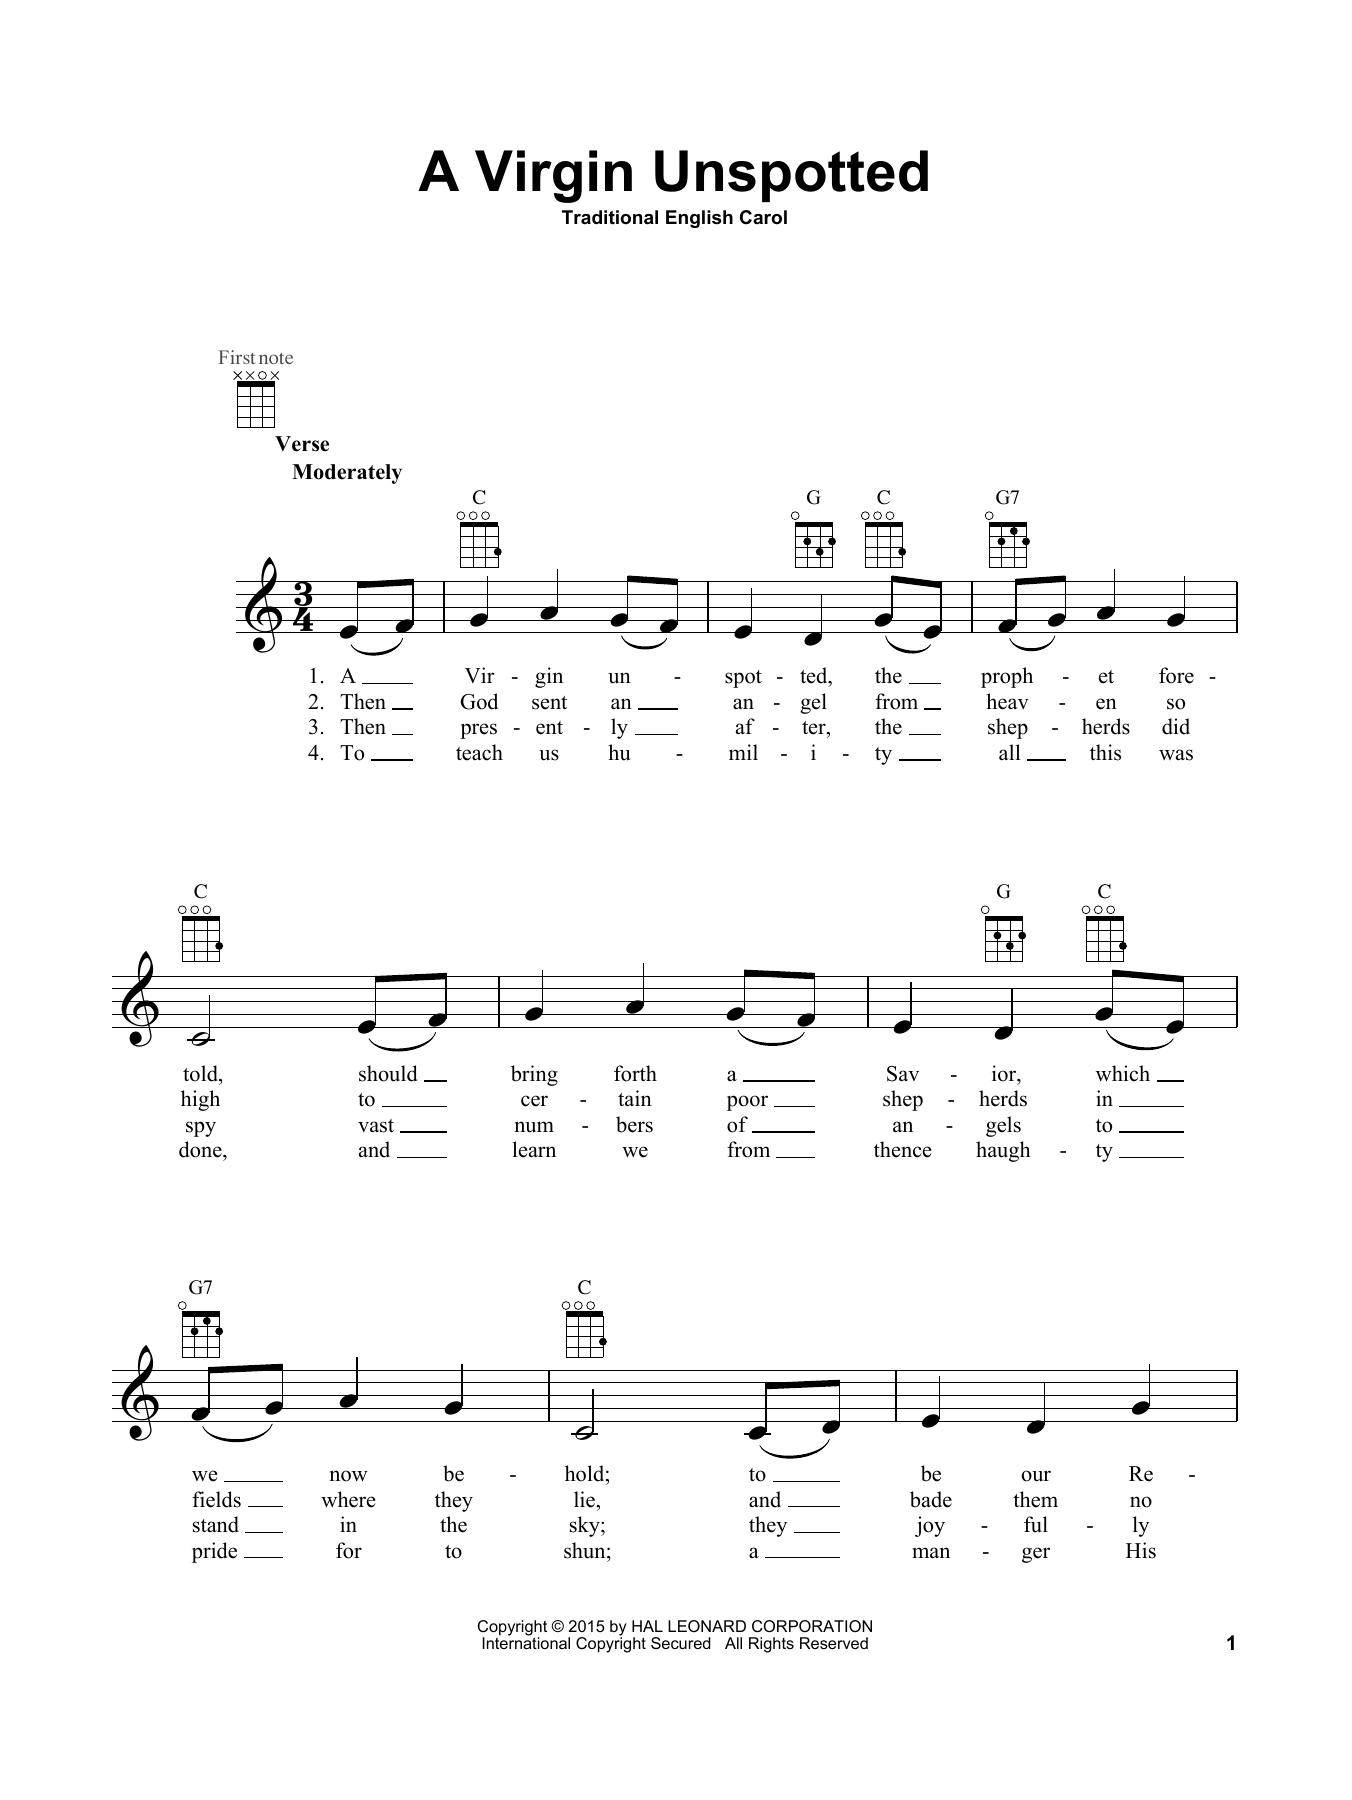 Traditional English Carol A Virgin Unspotted sheet music notes and chords. Download Printable PDF.